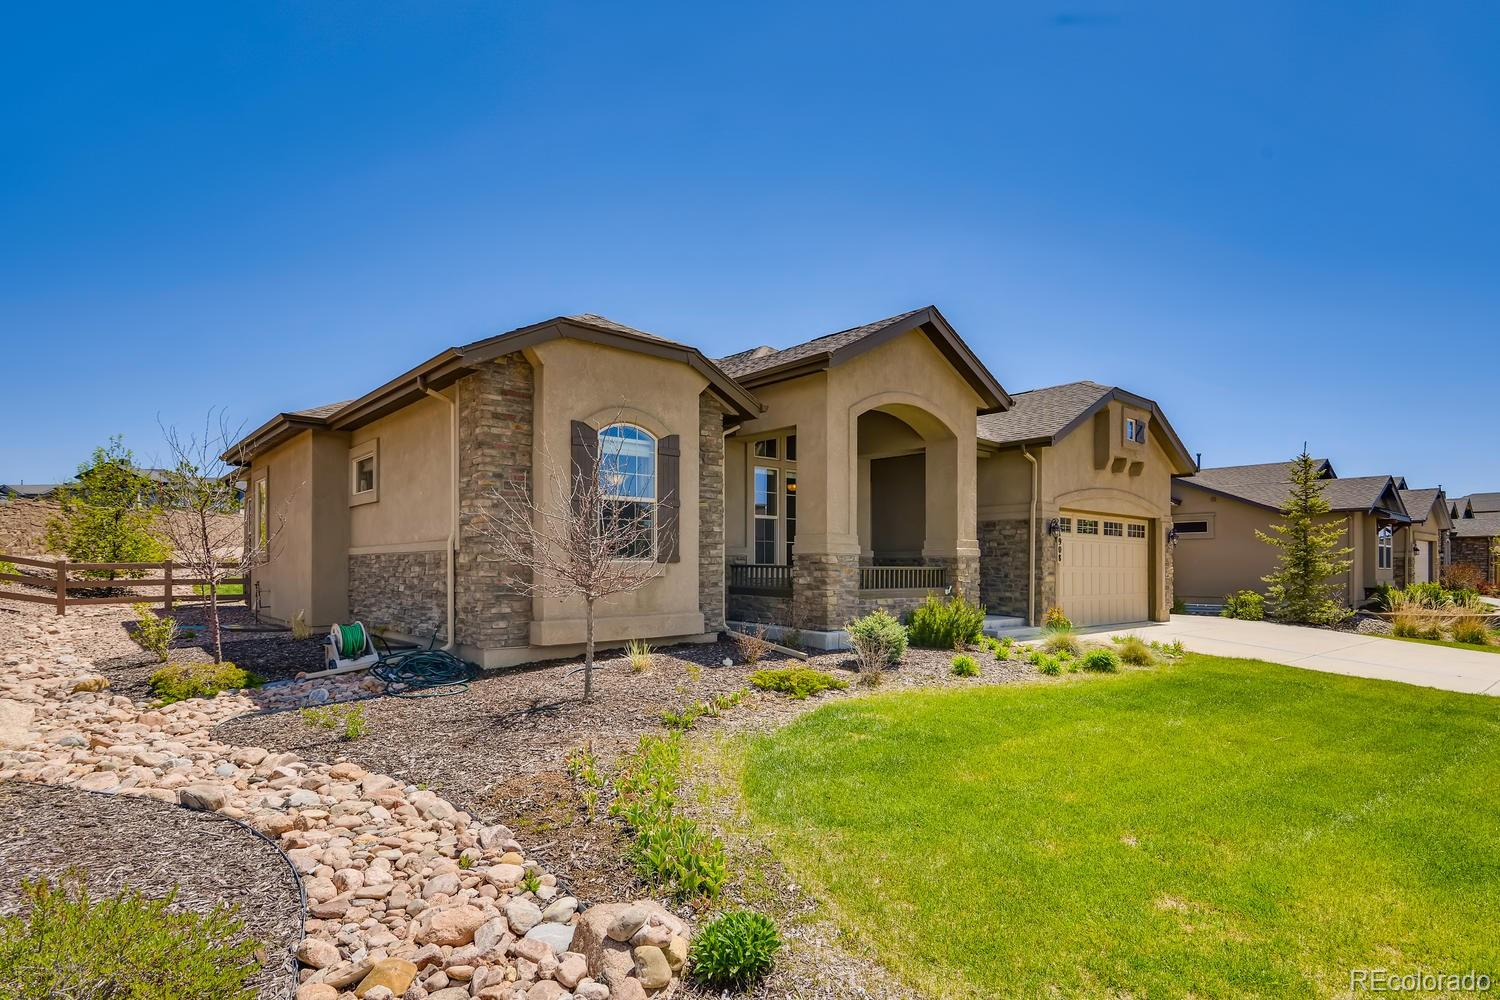 MLS# 5599006 - 2 - 1908 Turnbull Drive, Colorado Springs, CO 80921